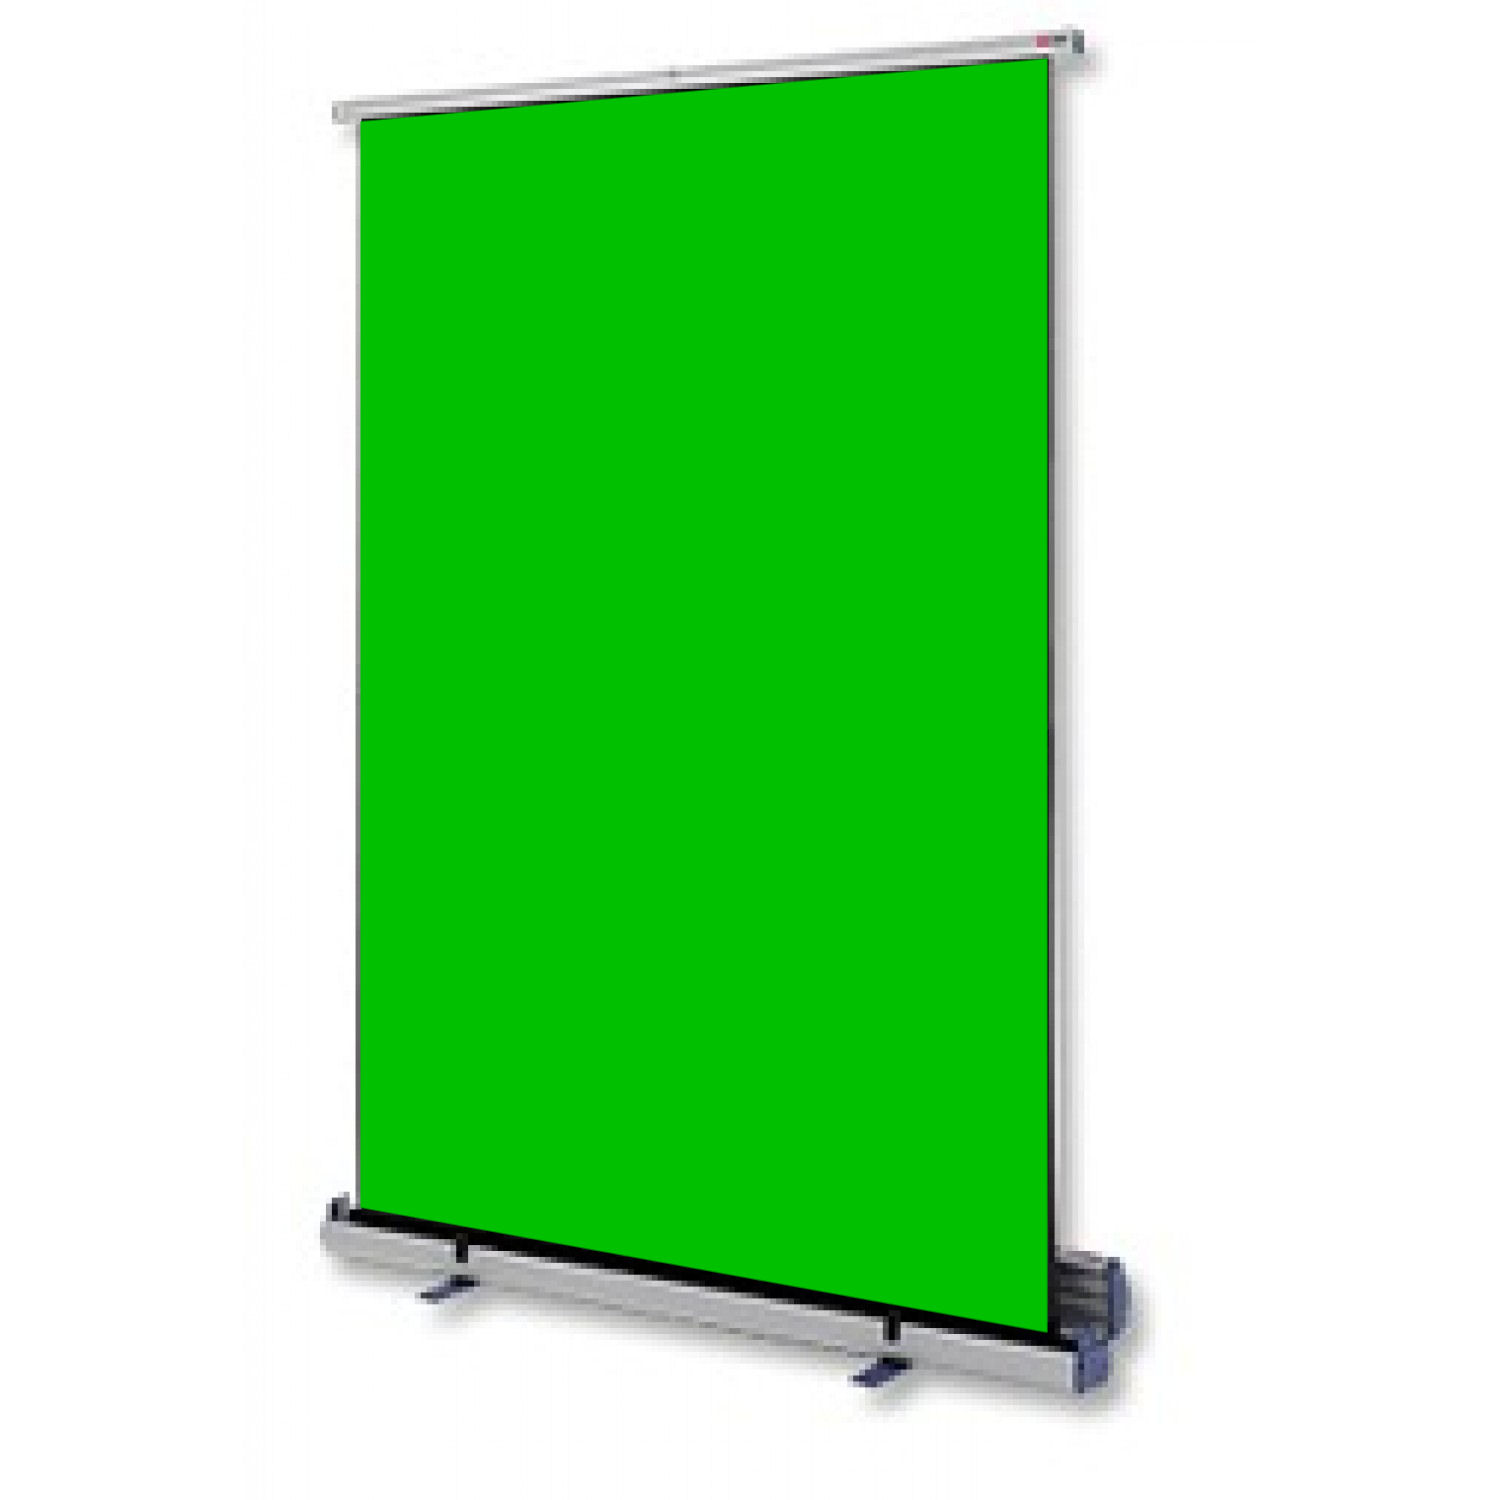 SG, Audio, Visual, PU, Series, 1.5m, wide, (100, ), Green, Chroma-Key, Pull-up, Portable, Screen, (3:4),